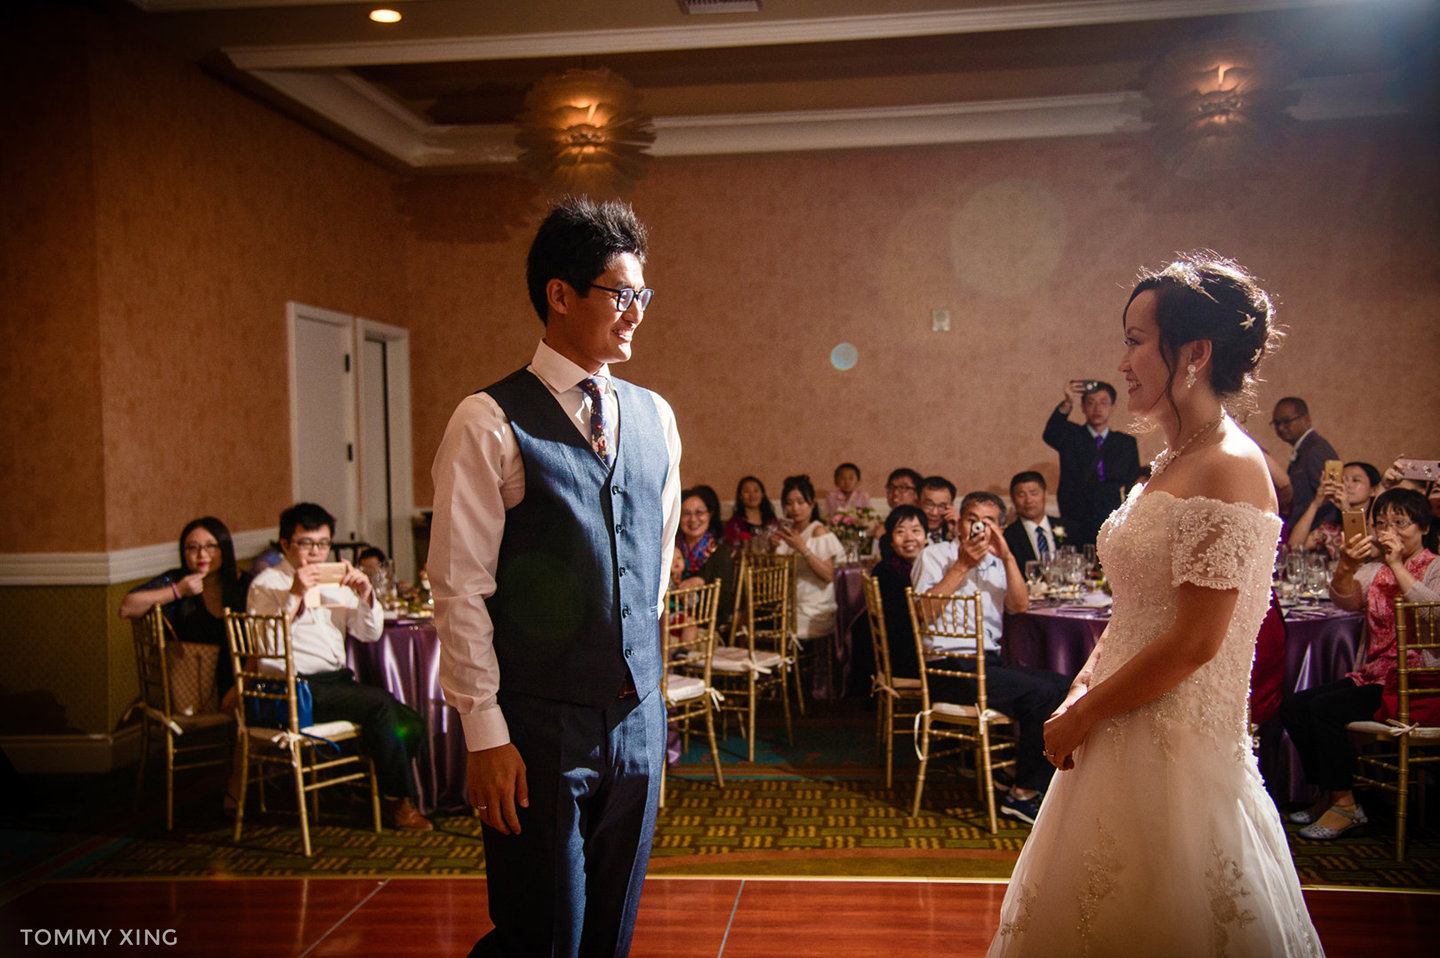 Paradise Point Resort Wedding Xiaolu & Bin San Diego 圣地亚哥婚礼摄影跟拍 Tommy Xing Photography 洛杉矶婚礼婚纱照摄影师 226.jpg